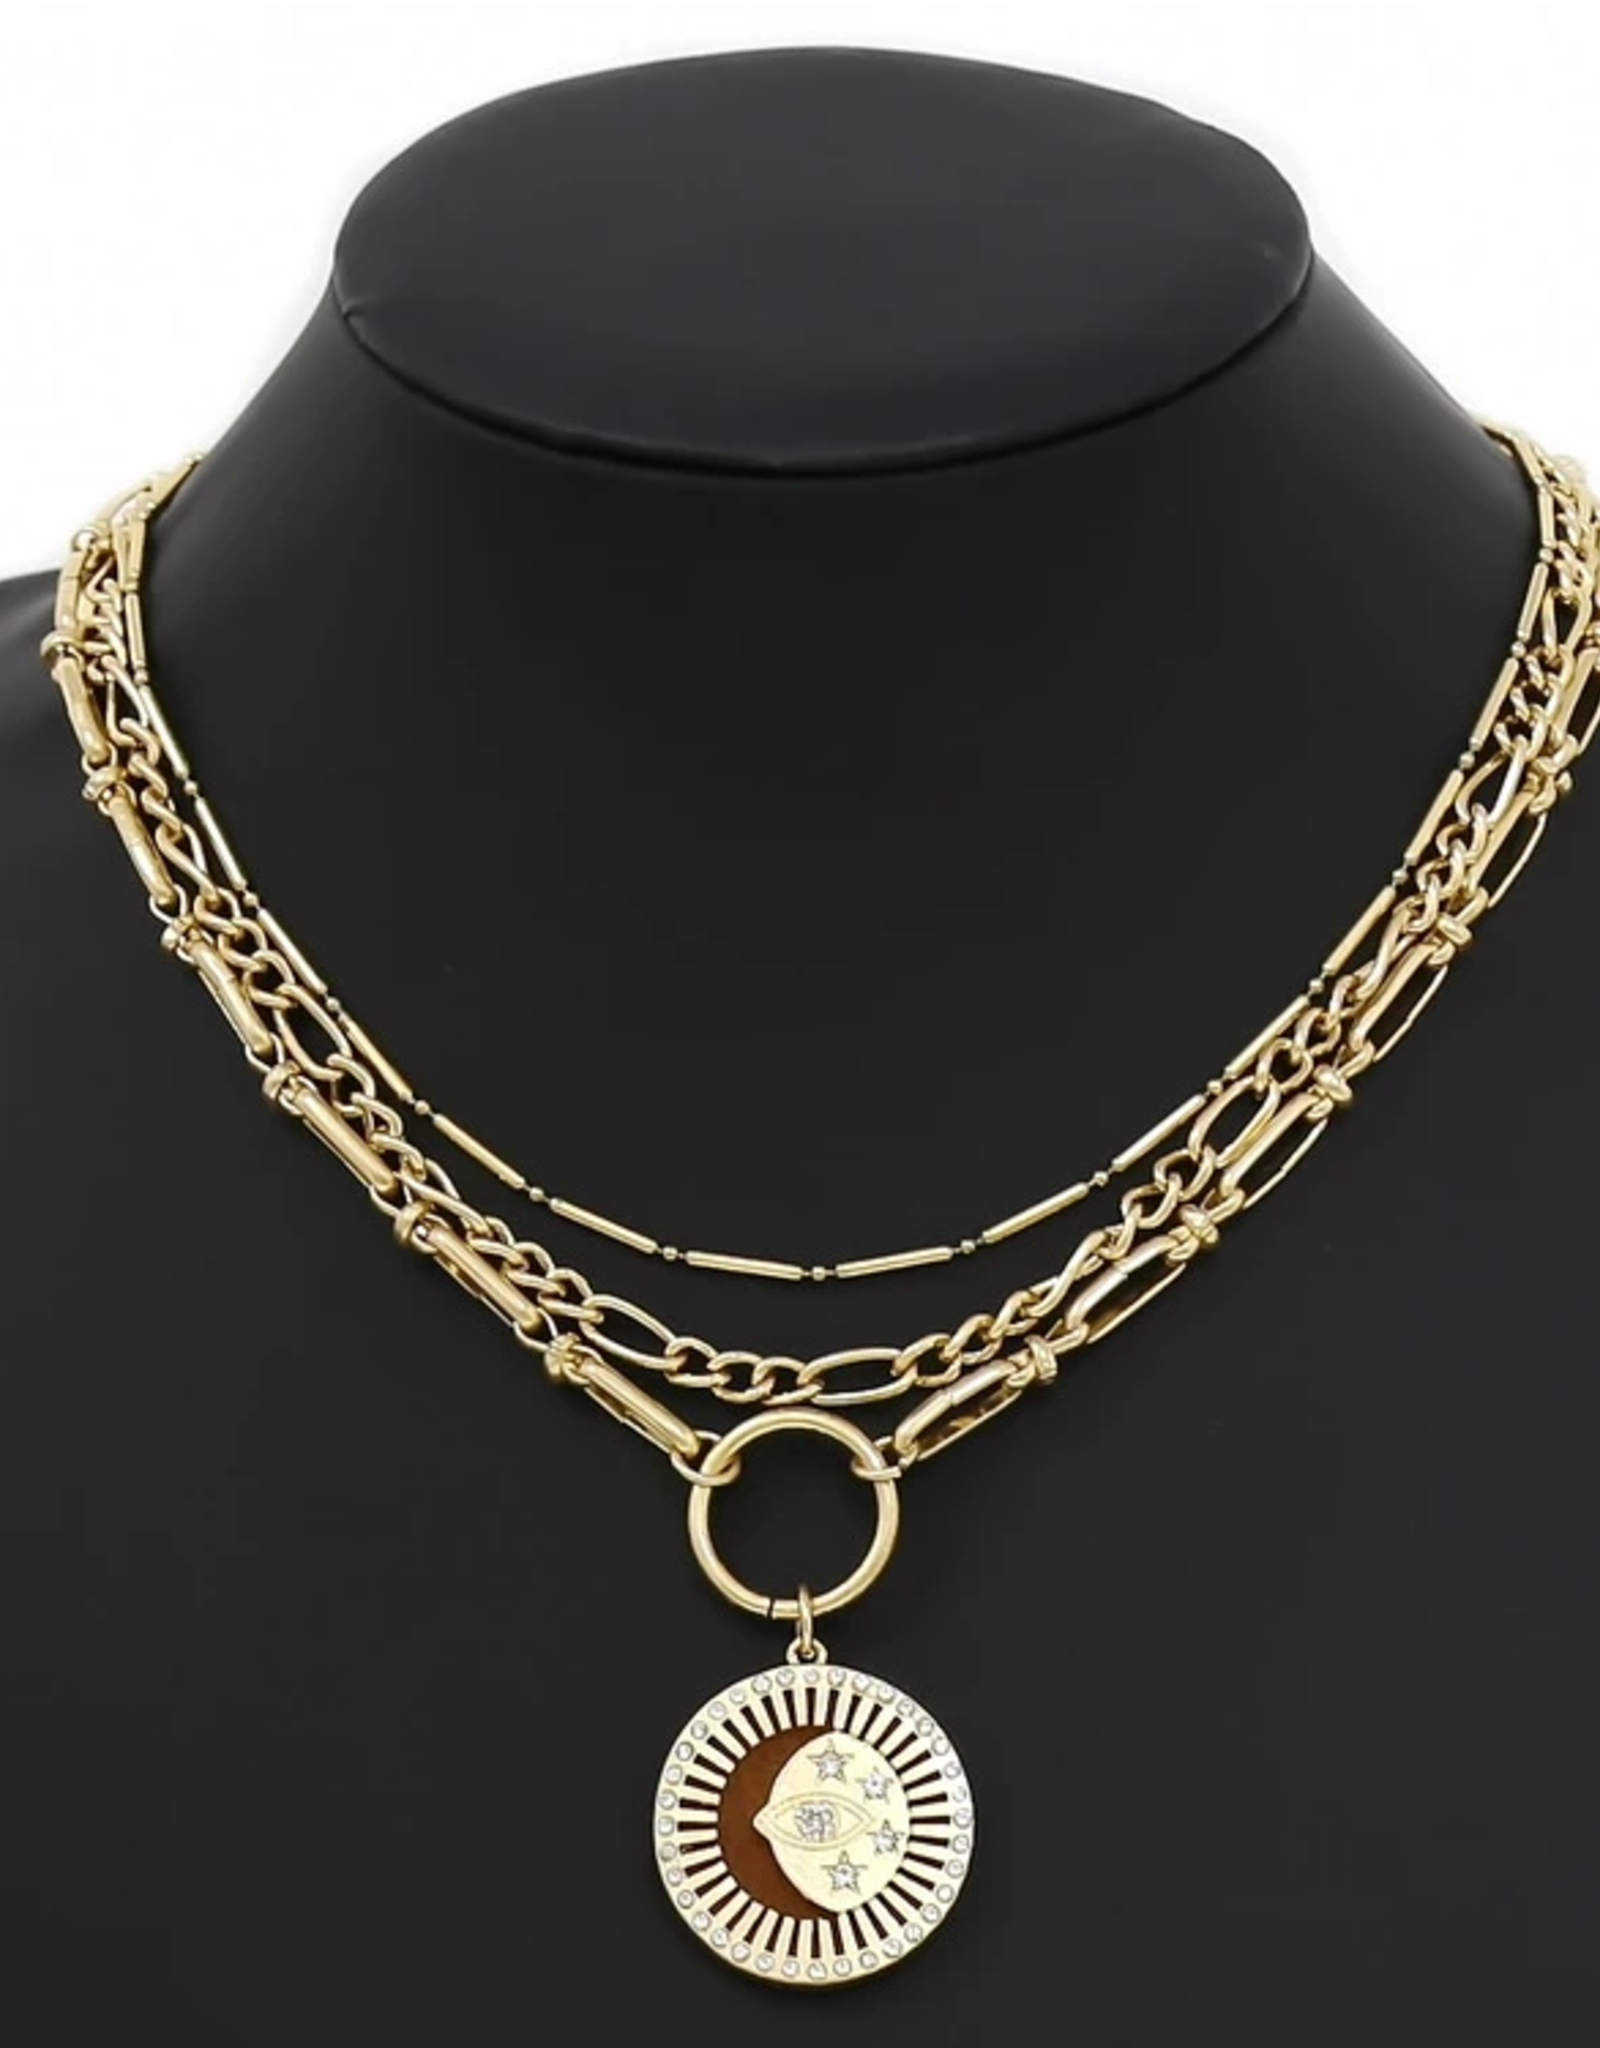 Blue Suede Jewels Coin Pendant Layered Chain Necklace Set